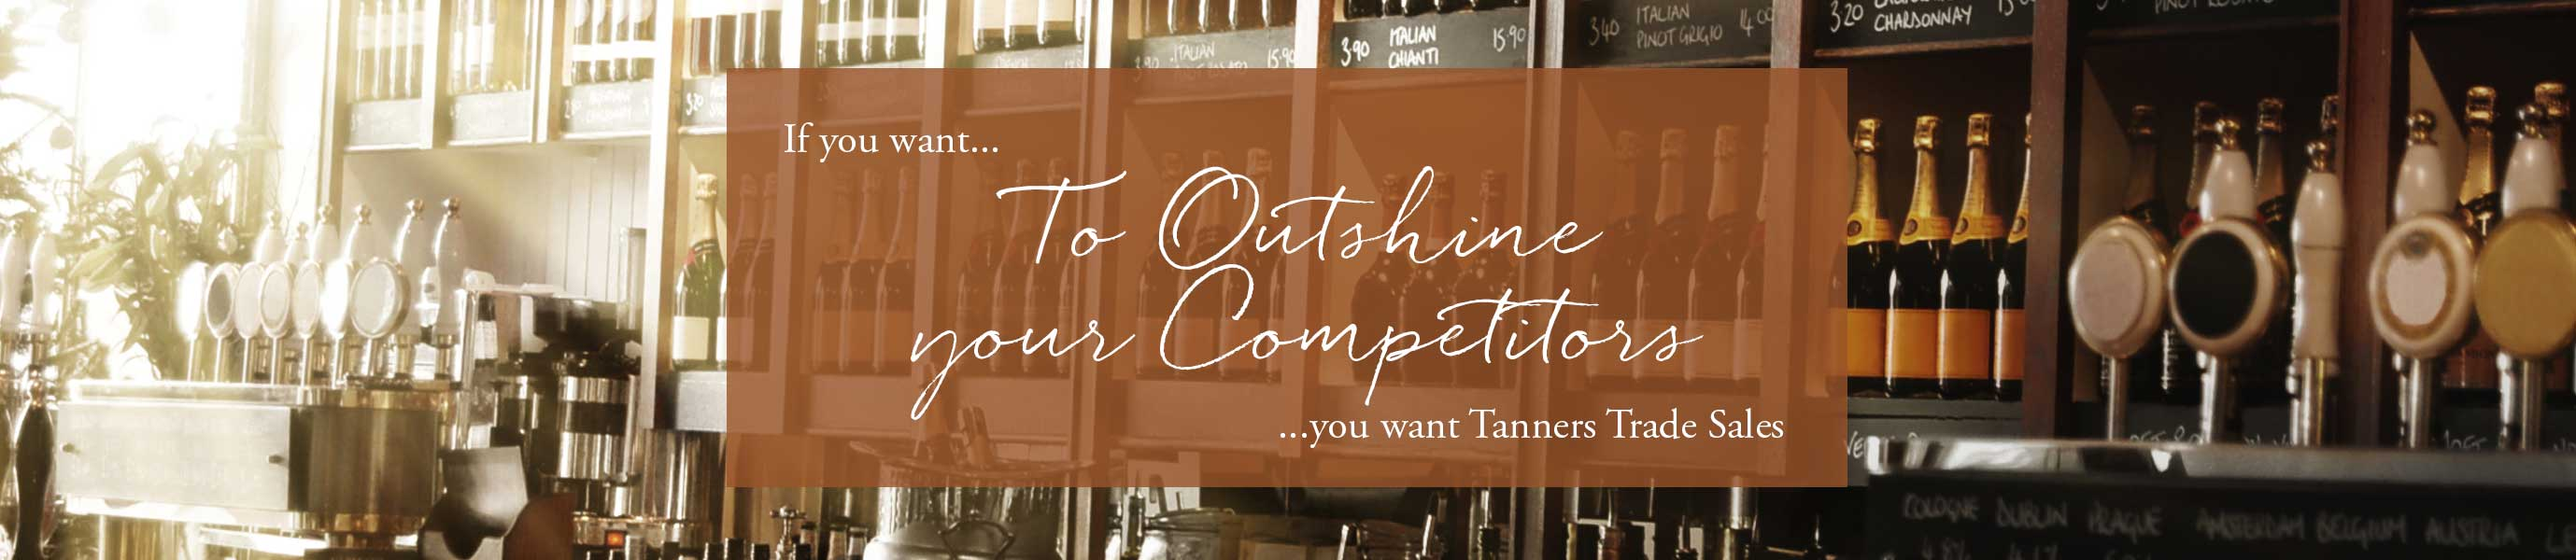 Outshine your competitors with Tanners Trade